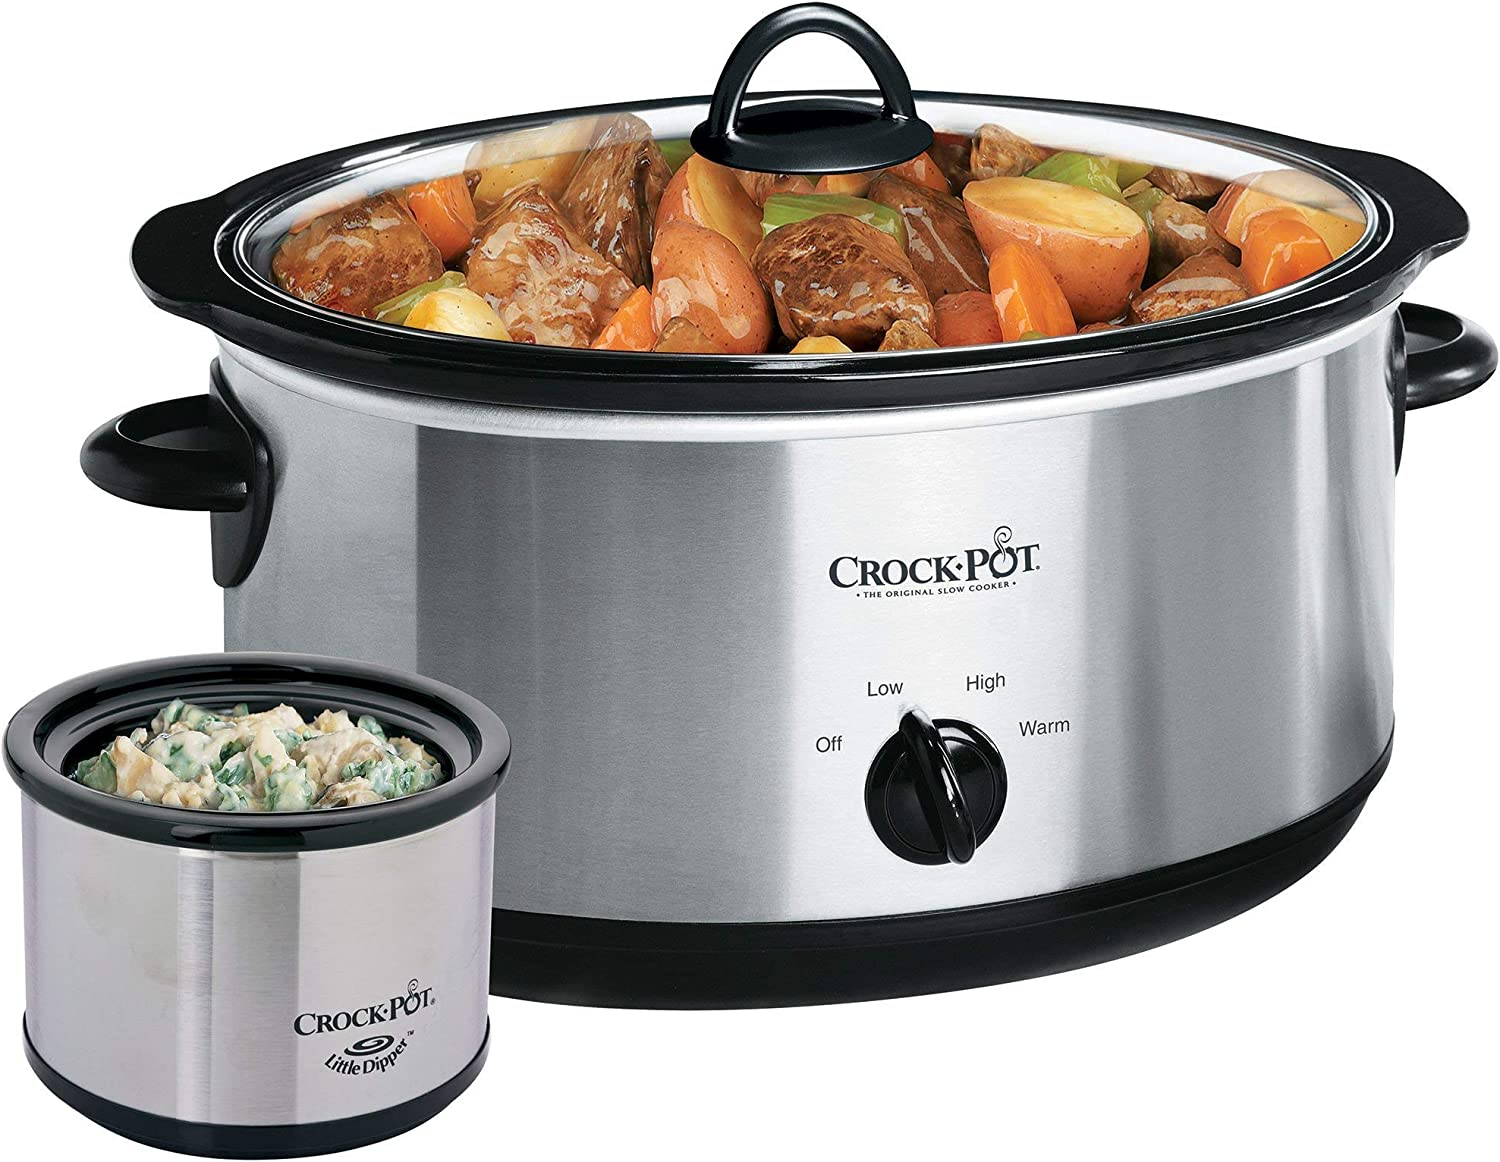 Crockpot SCV803-SS 8 quart Manual Slow Cooker with 16 oz Little Dipper Food Warme